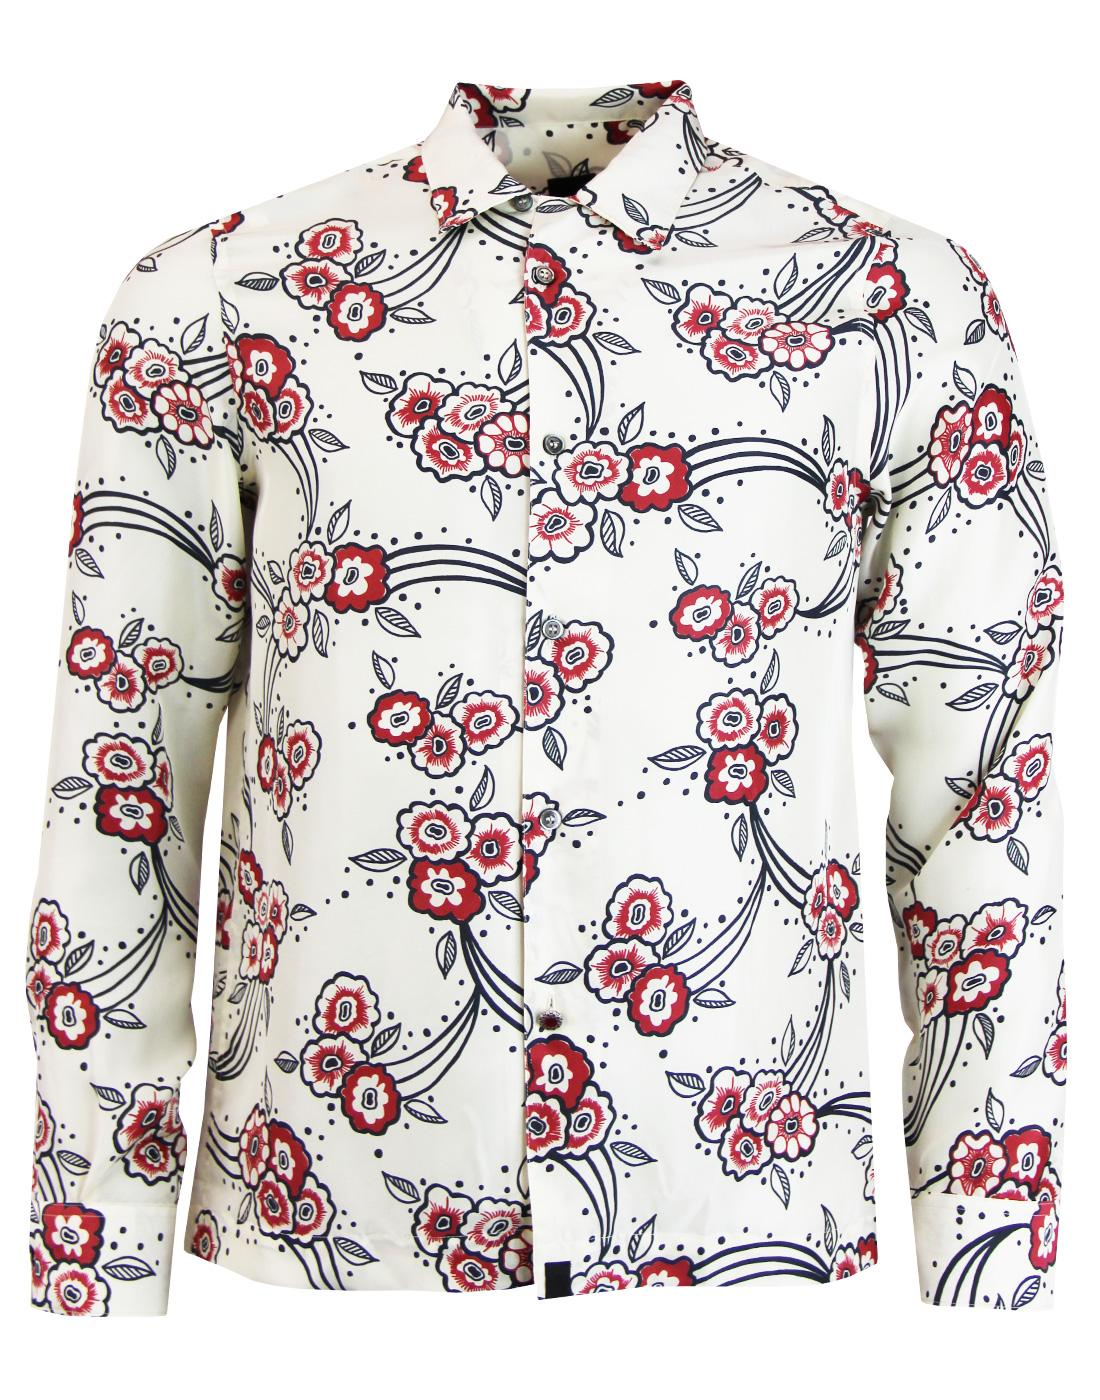 Piper PRETTY GREEN Retro 1960s Floral Silk Shirt